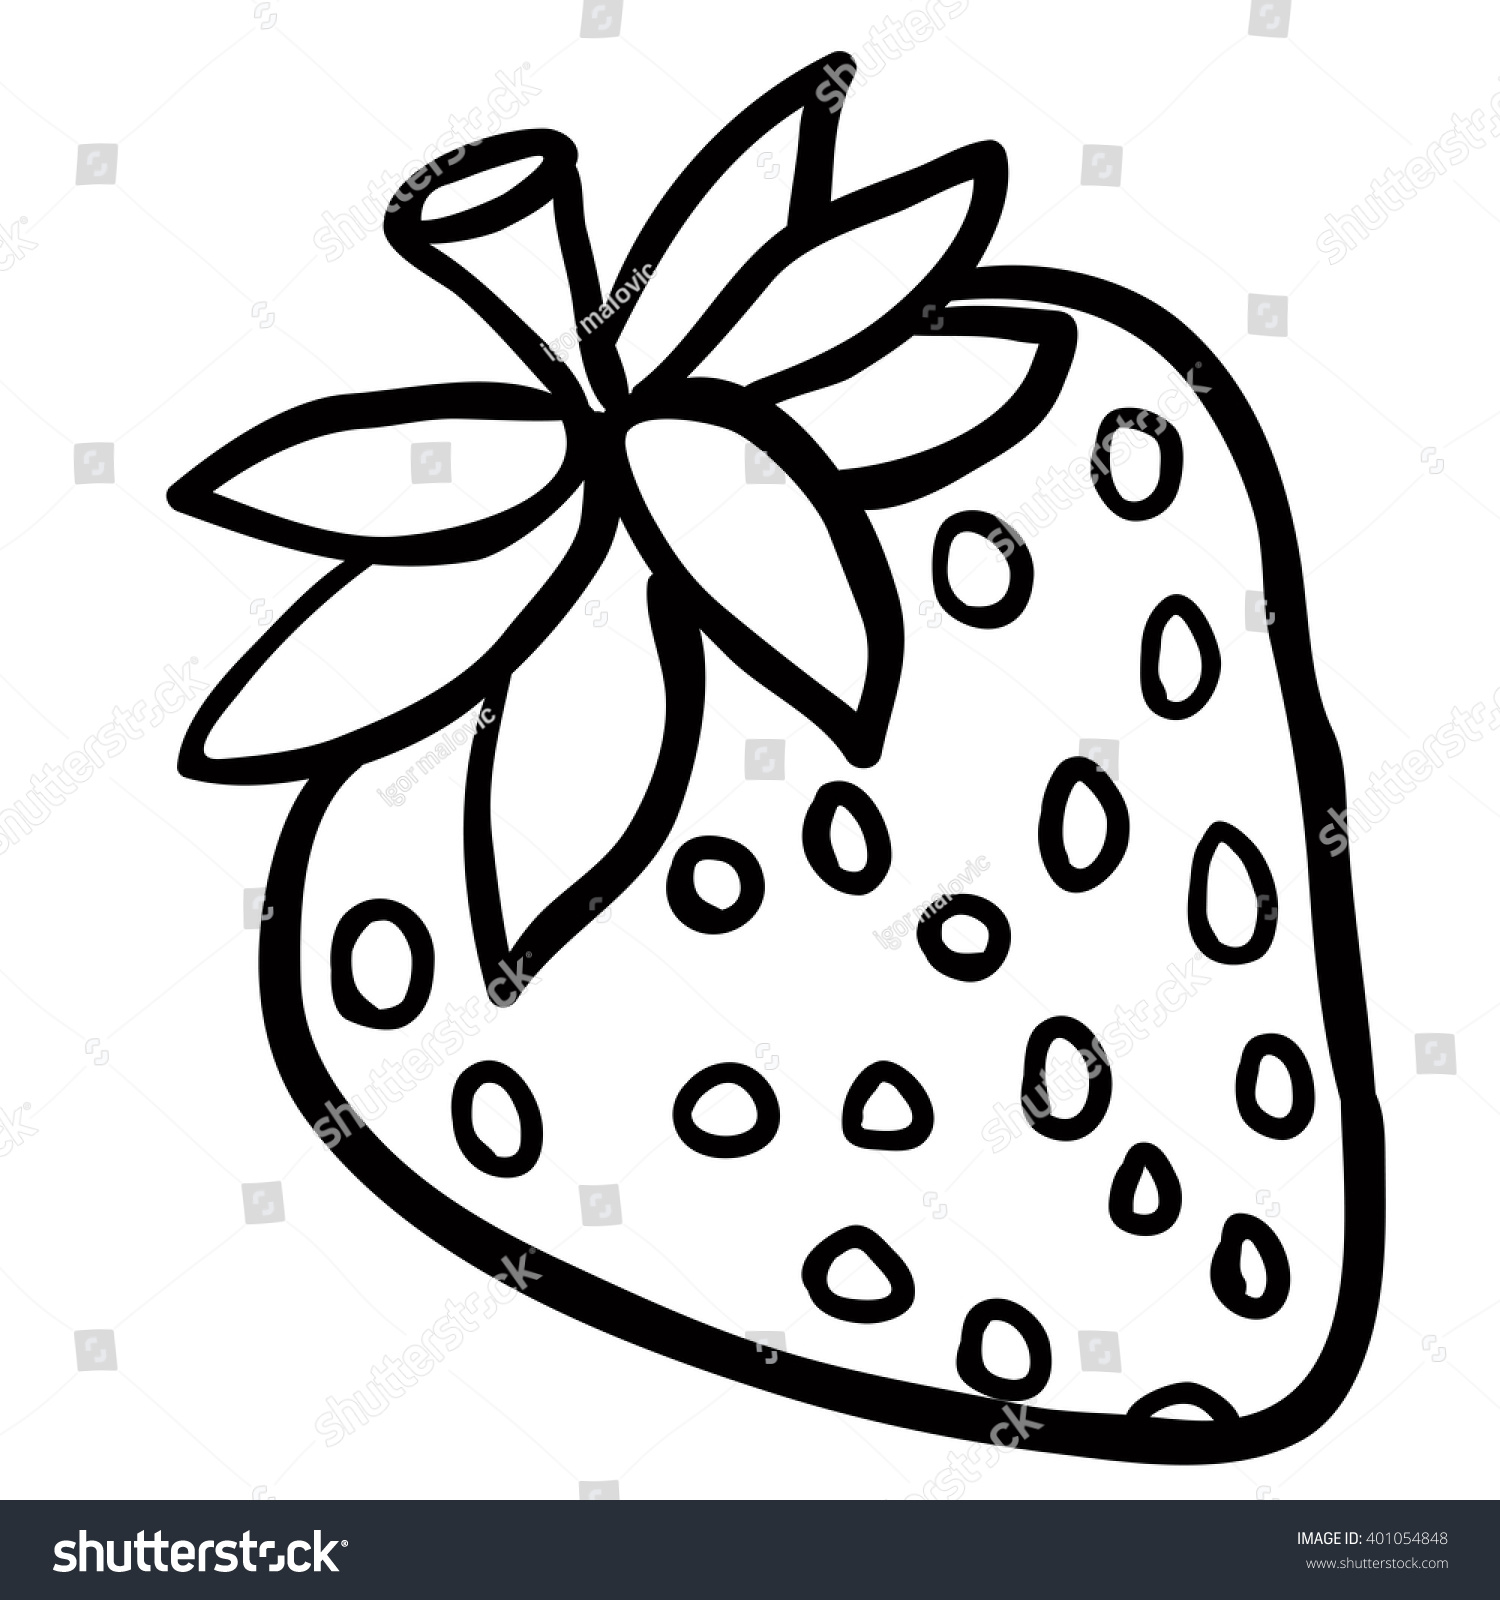 Strawberry black and white clipart 6 » Clipart Station.